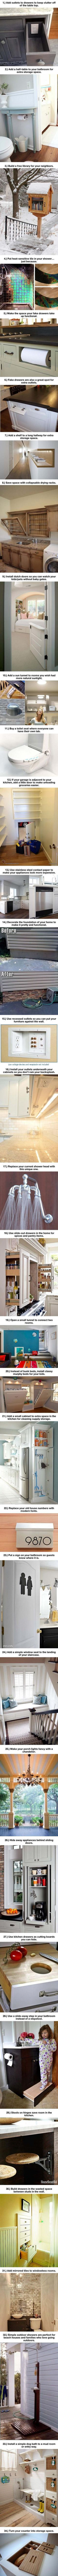 34 Insanely Clever Upgrades To Make Your Home